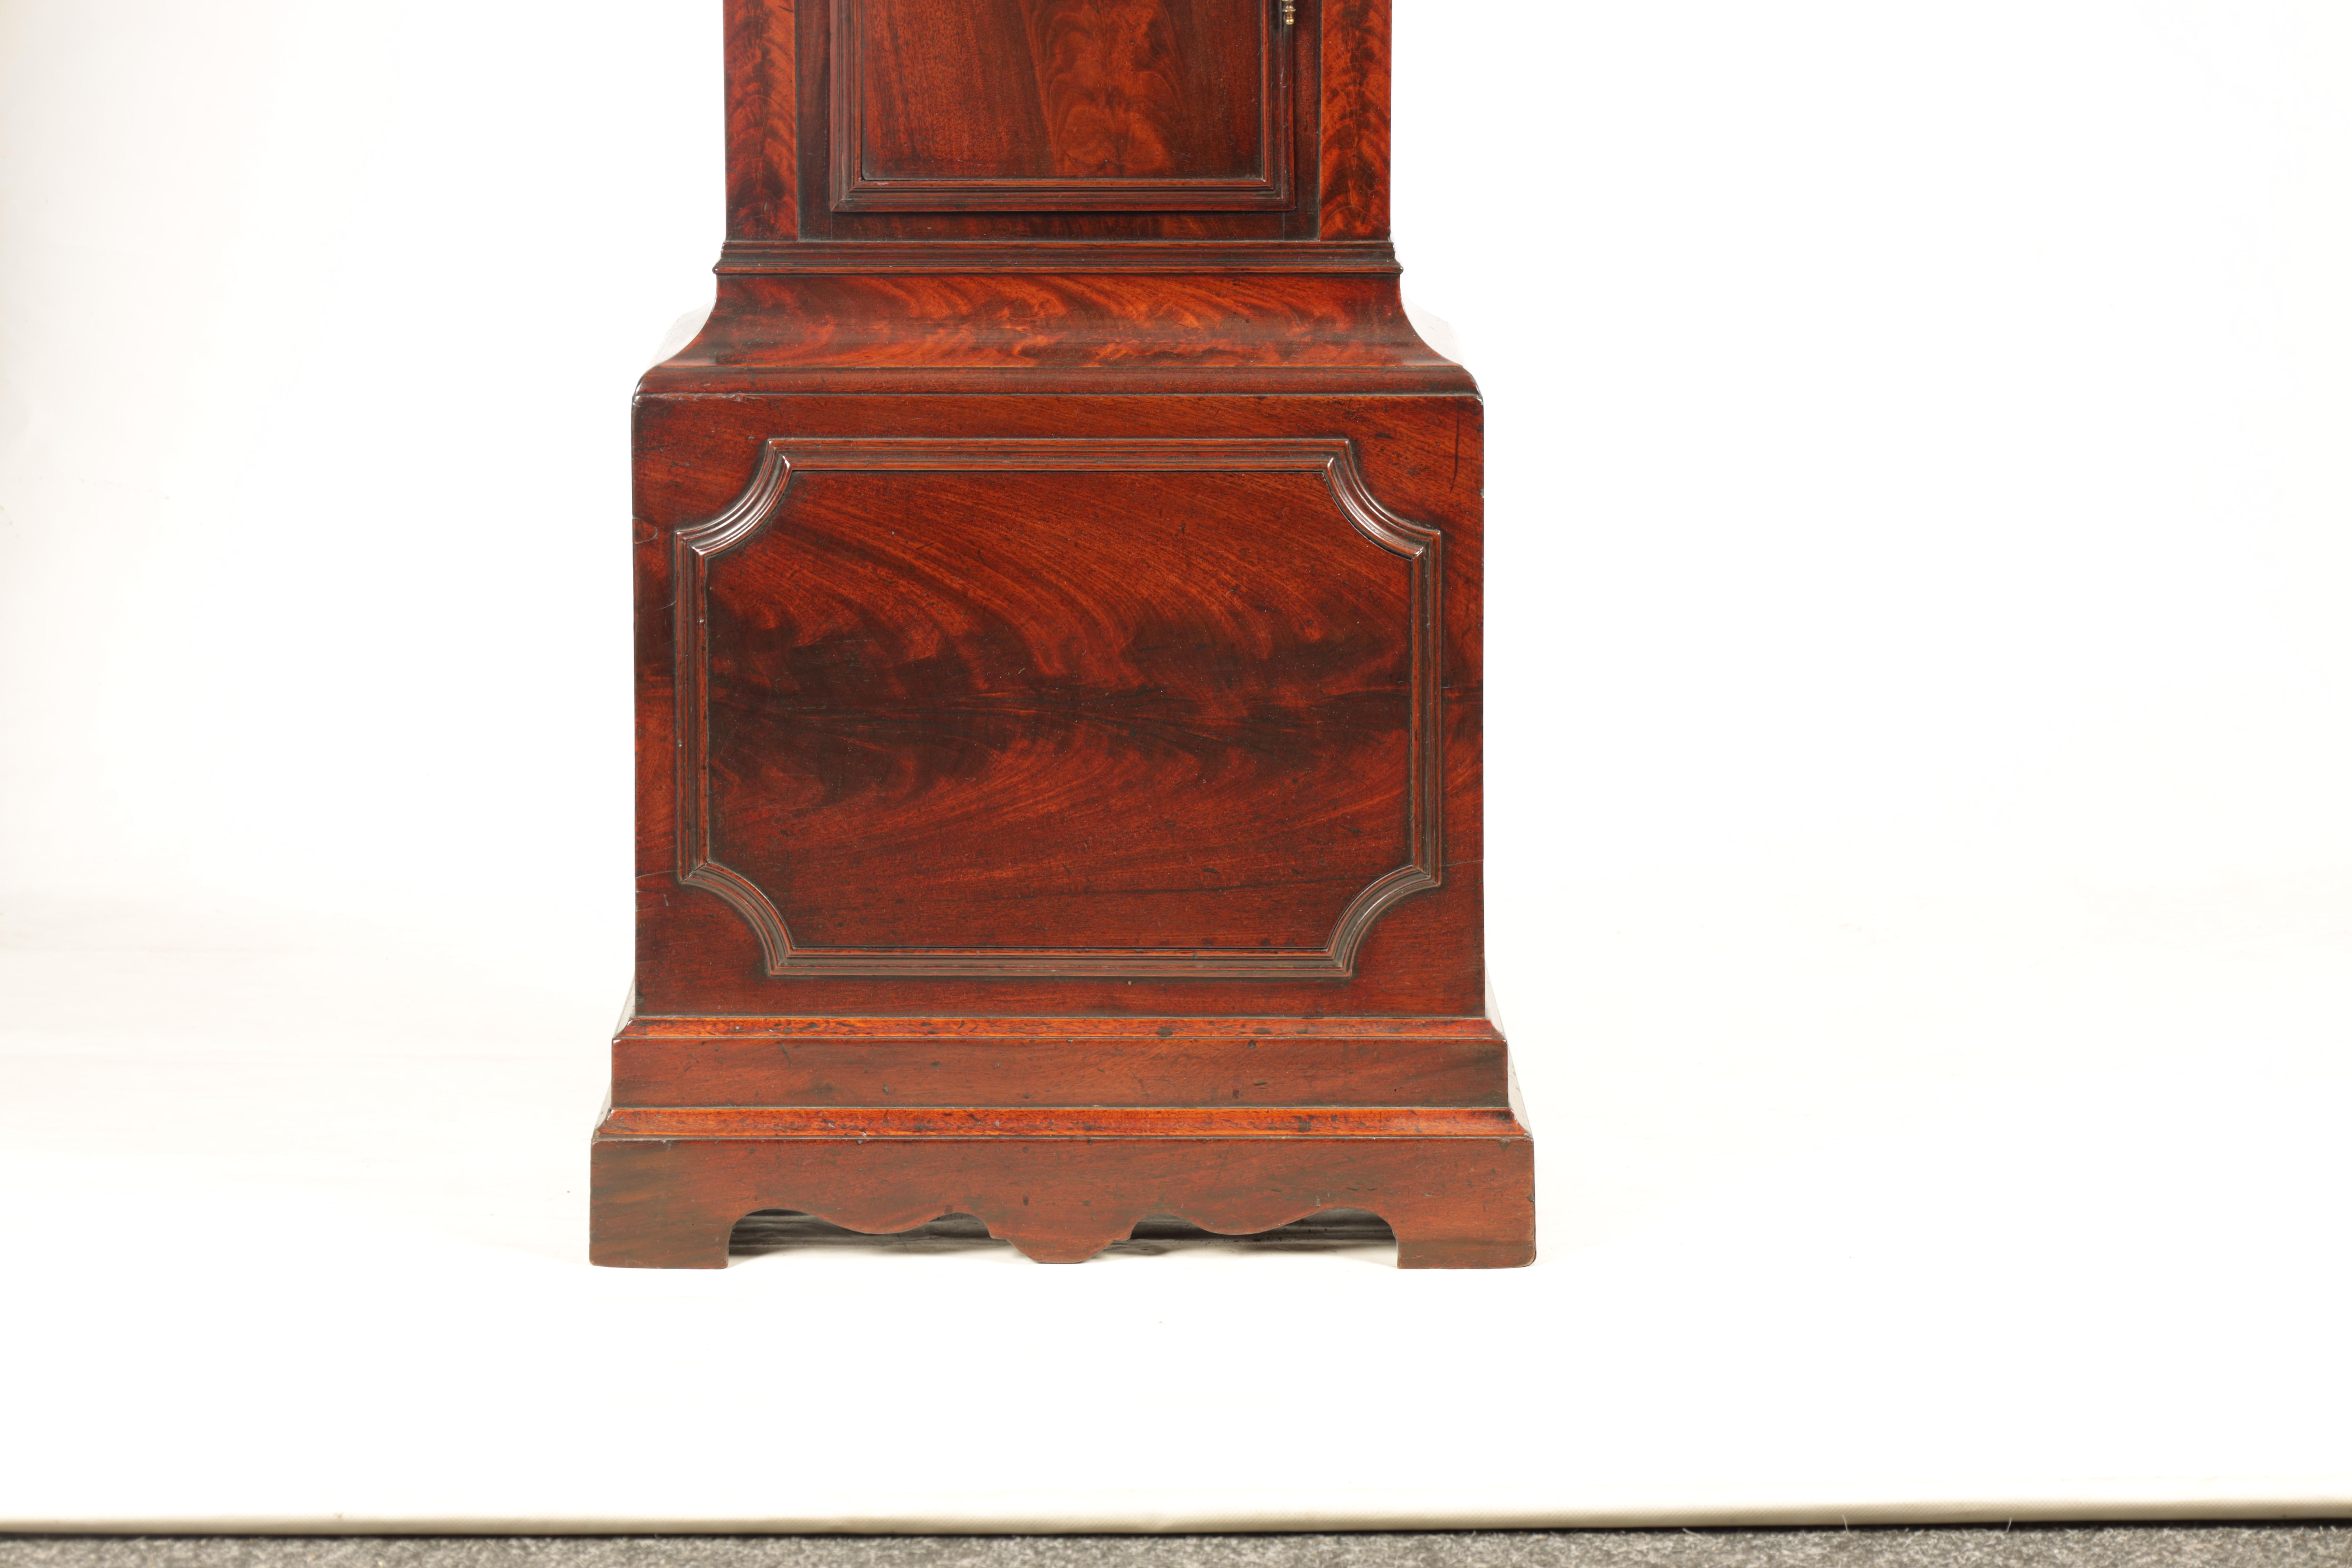 THOMAS RUSSELL, LONDON A GEORGE III FIGURED MAHOGANY LONGCASE CLOCK the arched moulded hood above - Image 2 of 5